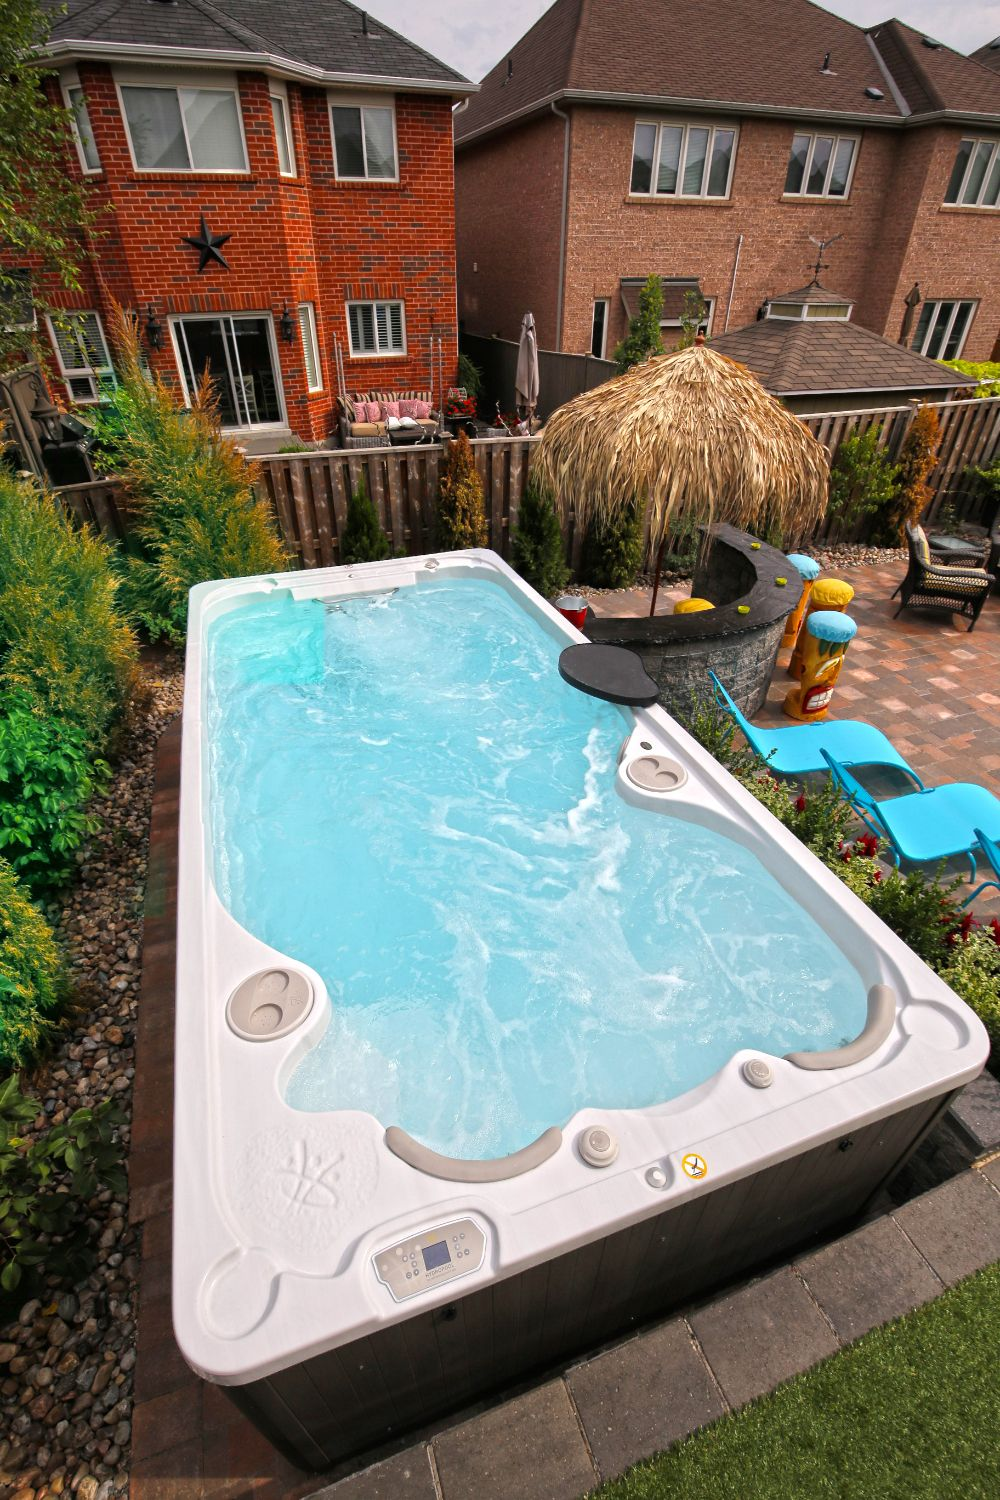 The 16fX AquaTrainer swim spa from Hydropool Hot Tubs and Swim Spas ...